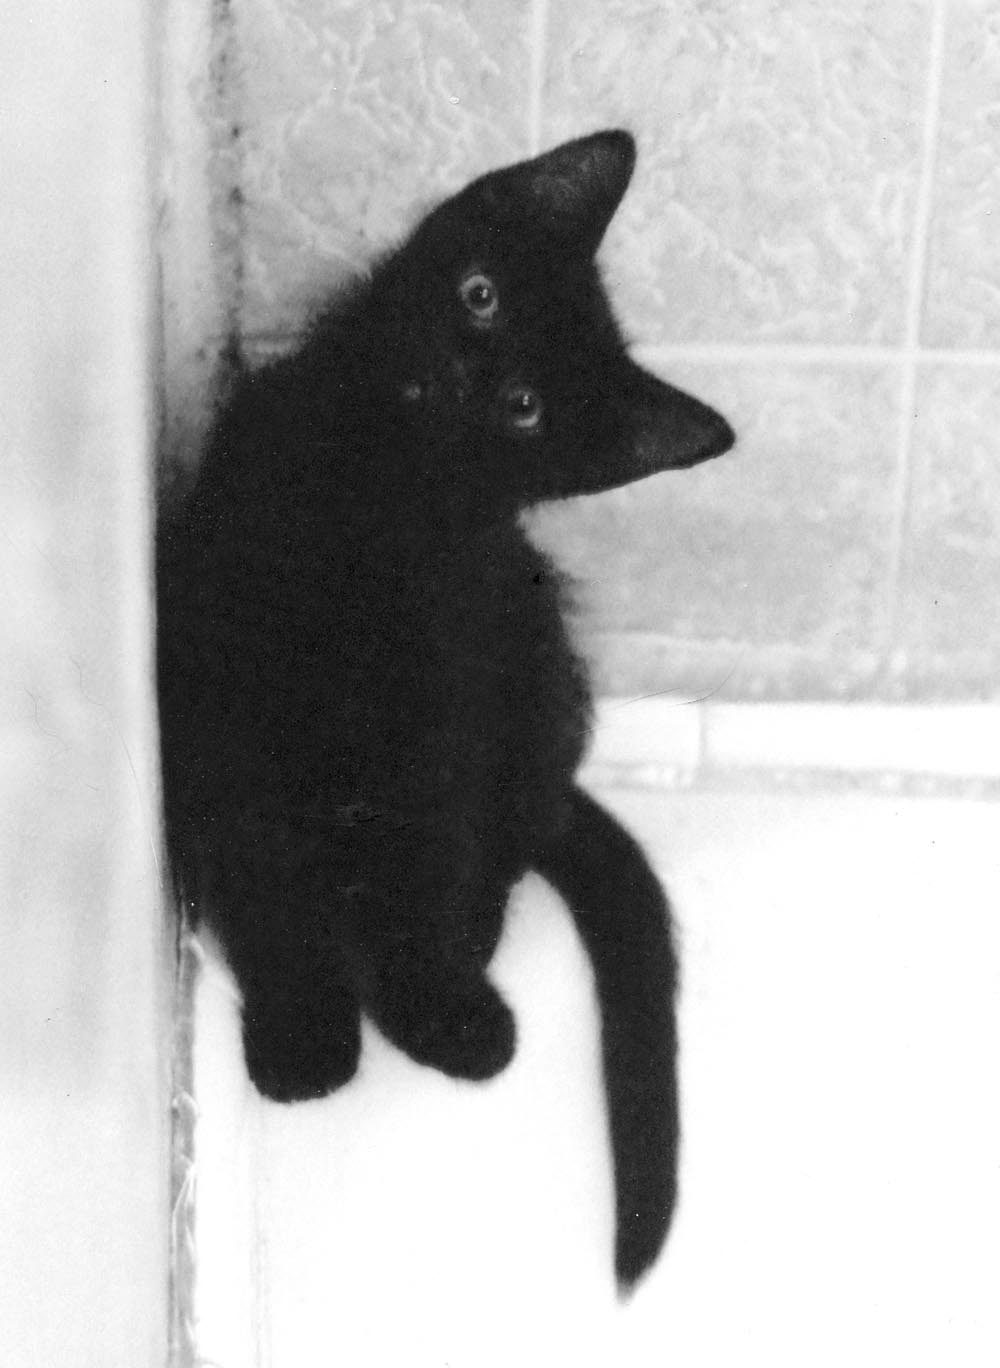 black kitten on edge of tub